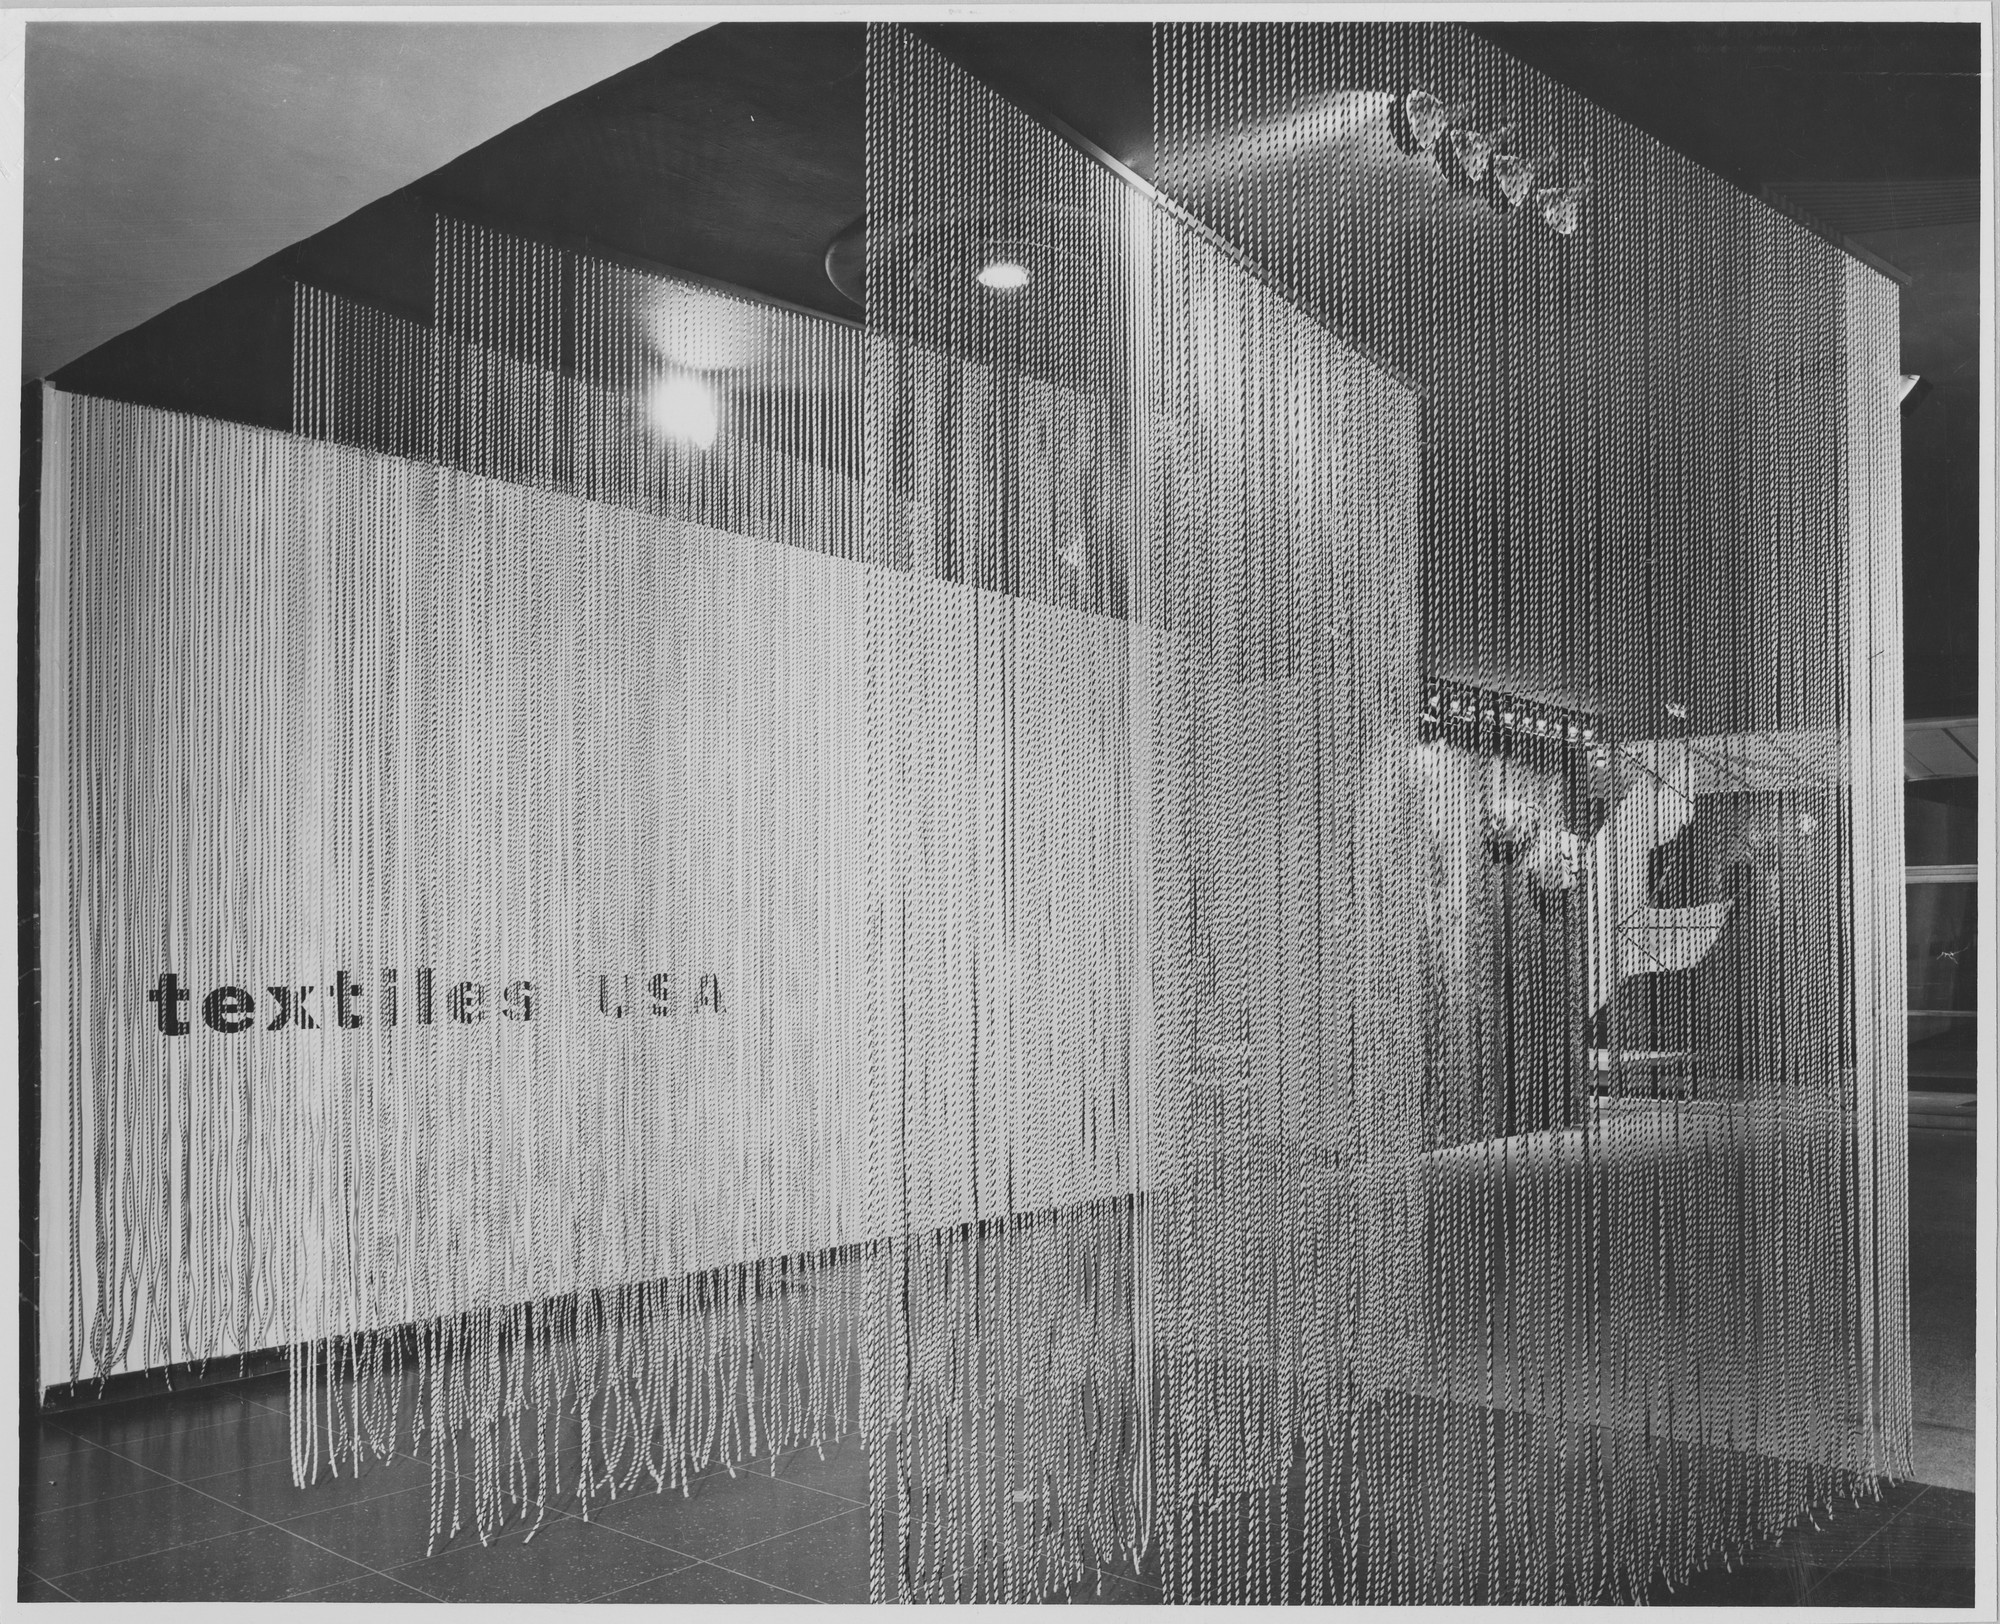 "Installation view of the exhibition, ""Textiles U.S.A."" August 29, 1956–November 4, 1956. Photographic Archive. The Museum of Modern Art Archives, New York. IN606.1. Photograph by George Barrows."